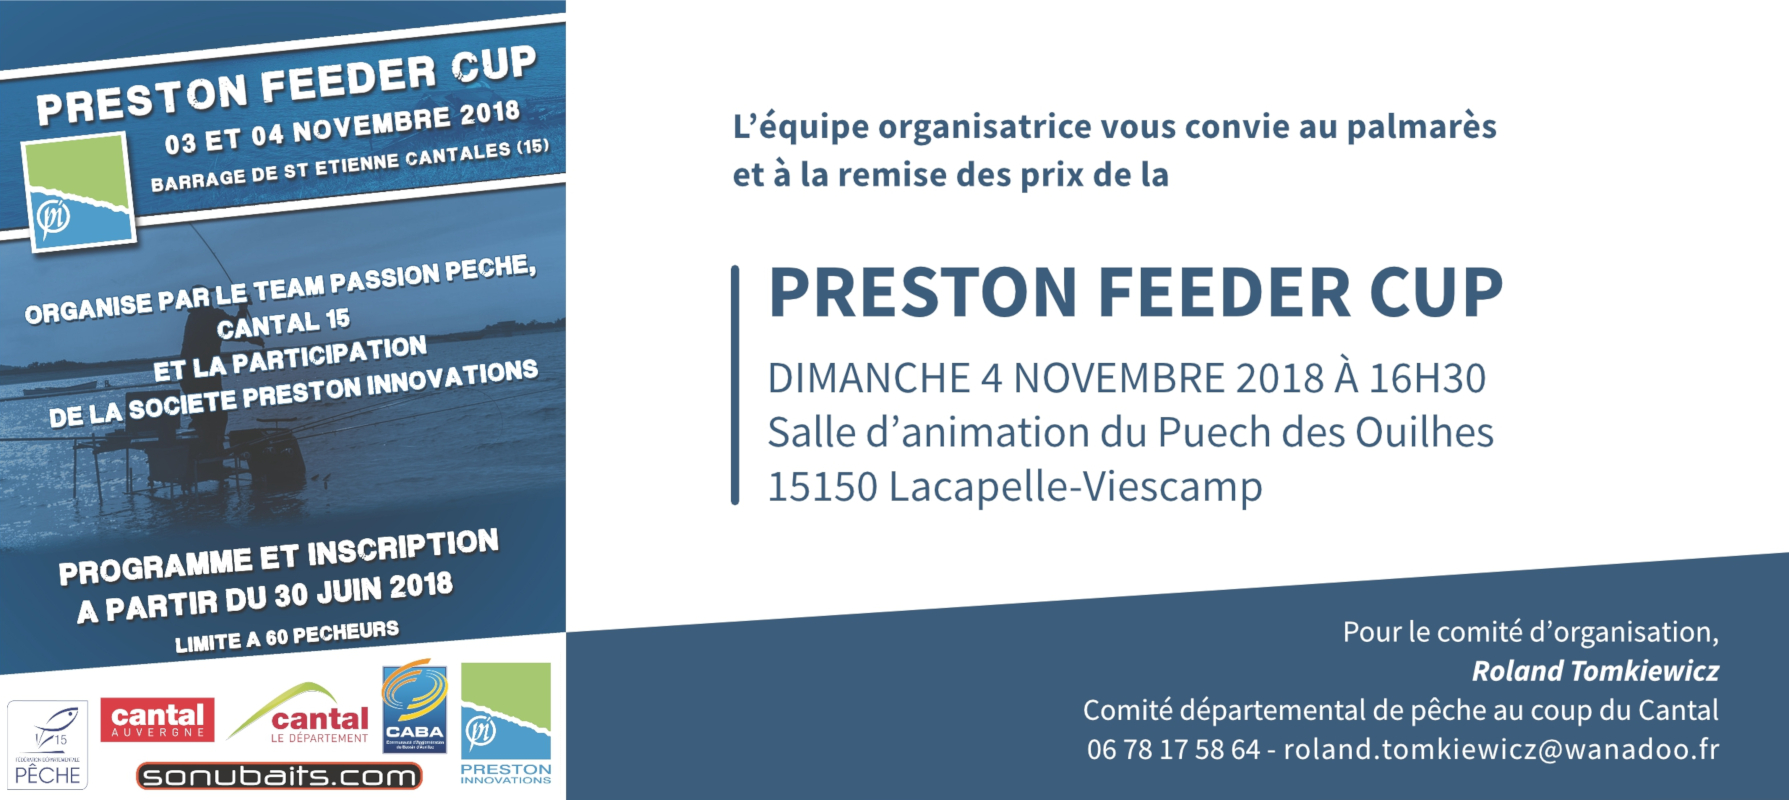 Invitation Preston Feeder Cup